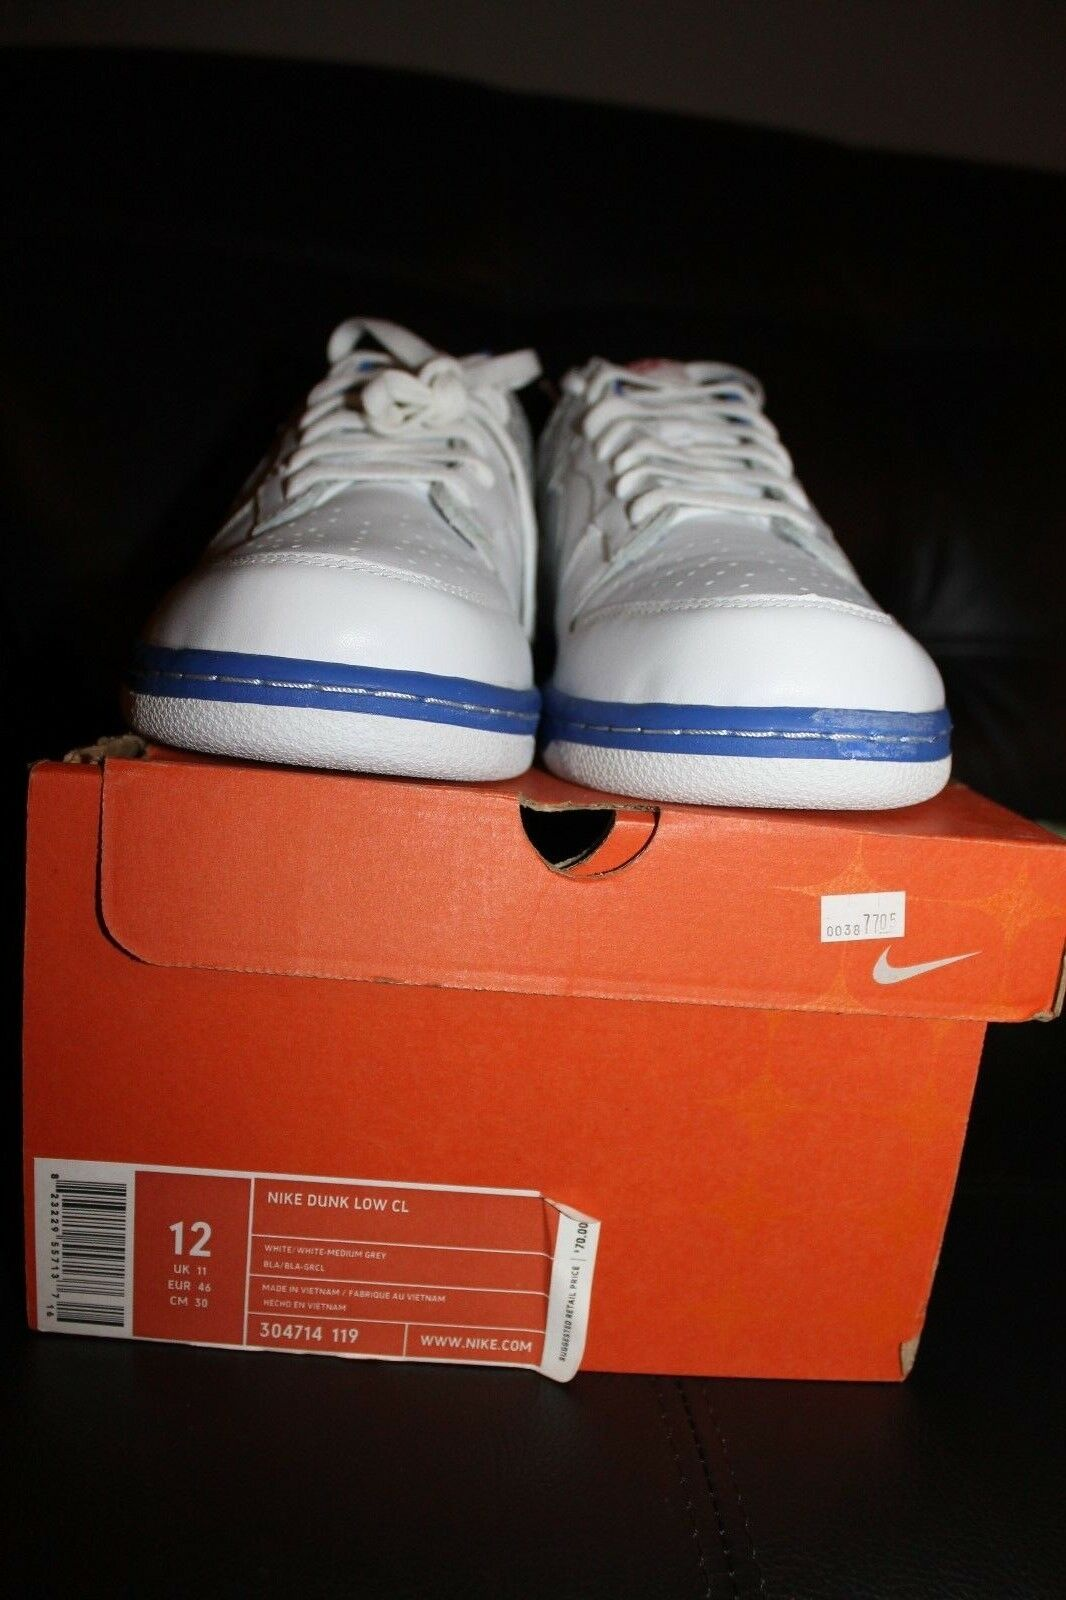 Nike Dunk Low CL x Jordan III True Blue inspired Price reduction The latest discount shoes for men and women